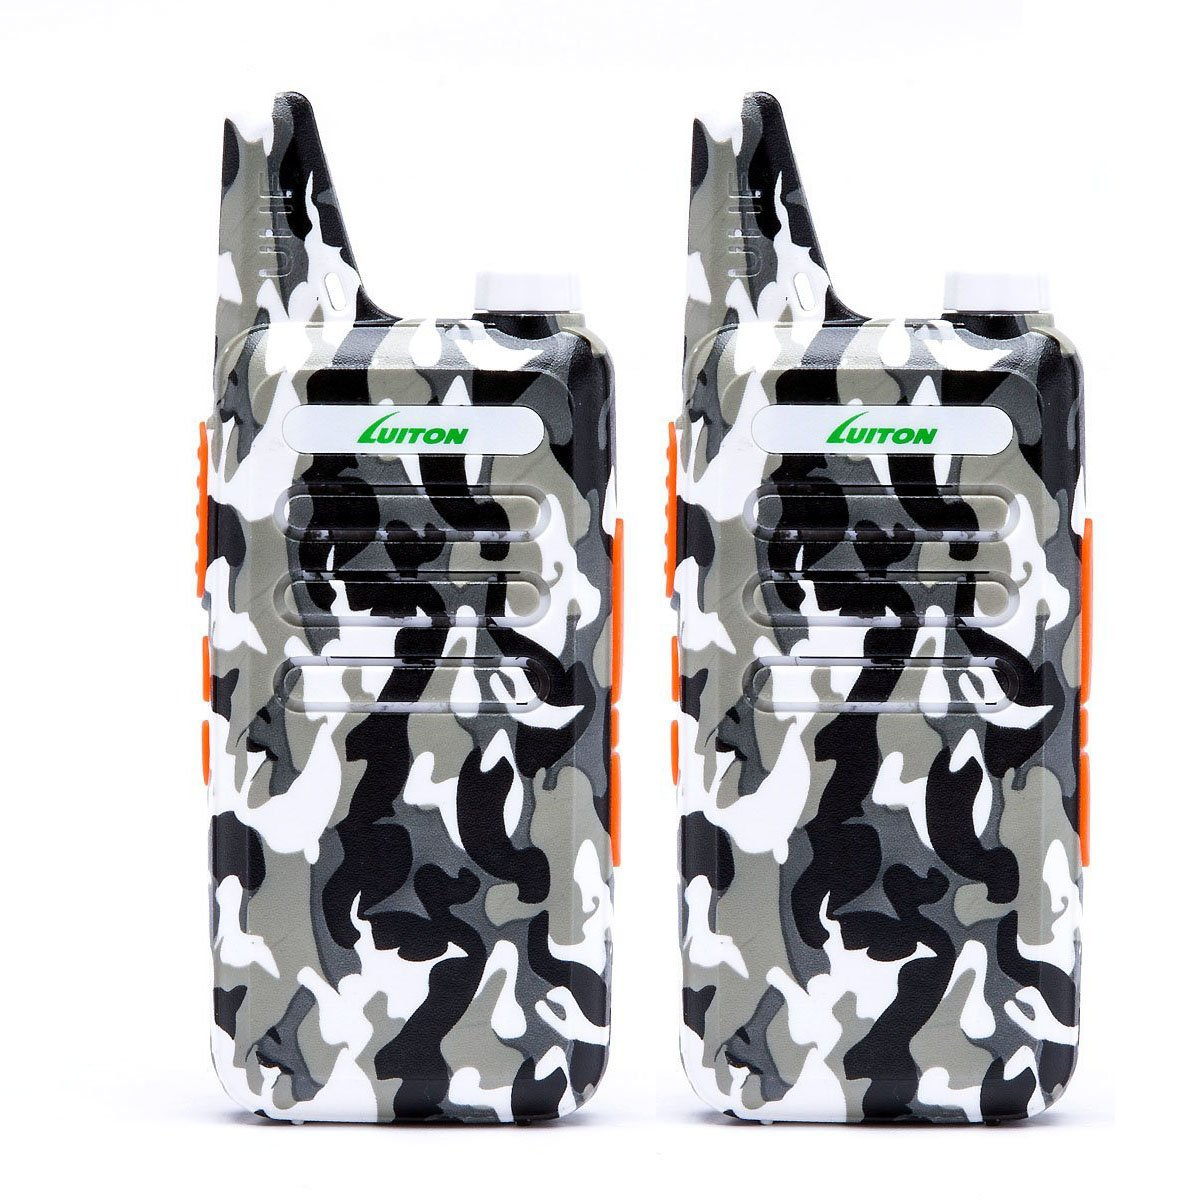 2 Way Radio Walkie Talkies Long Range for Outdoor Camping Hiking Hunting Activities LT-316 Military Camo Mini Uhf Rechargeable Two-Way Radio 5-10 Miles Back to School Ideal Gifts by LUITON (2 Pack) by LUITON (Image #1)